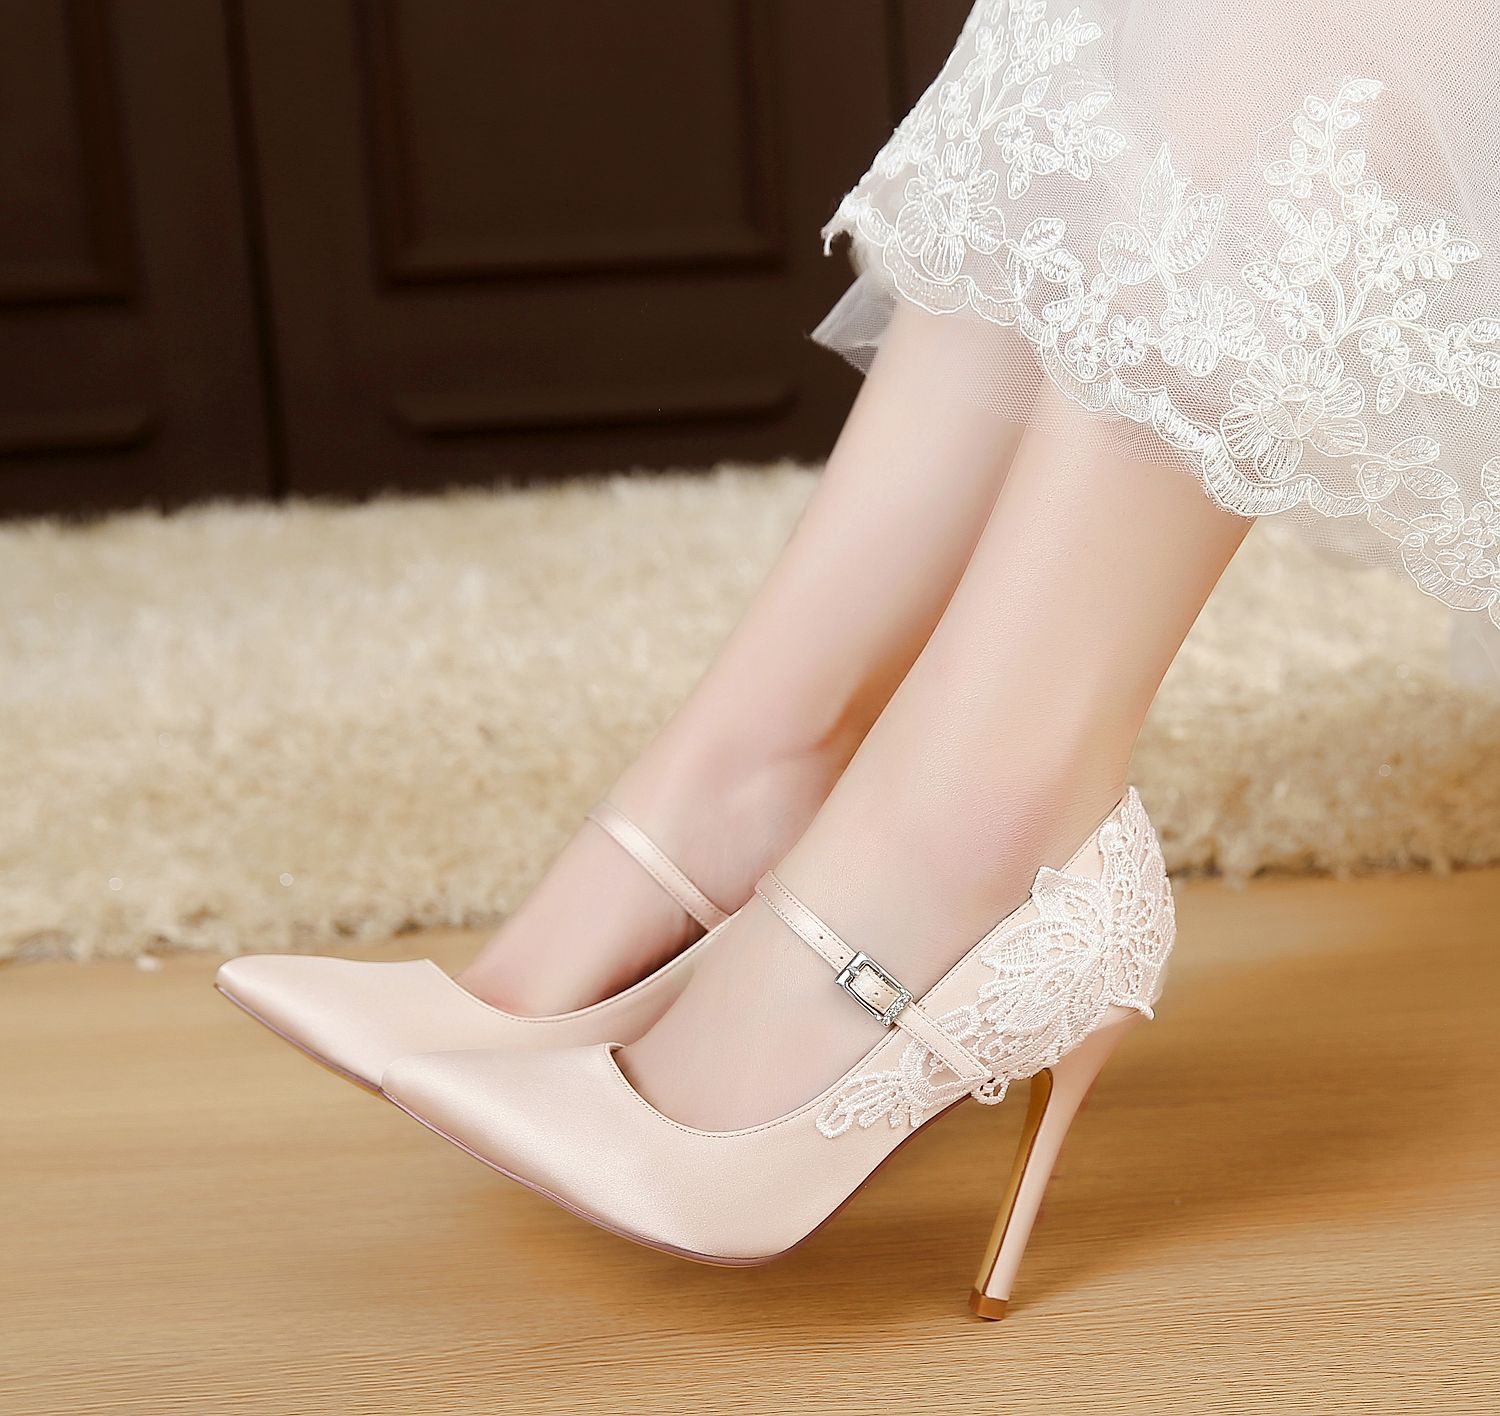 Pin On Luxveer Rs 2064 Closed Toe Lace Wedding Shoes With Strap 11cm